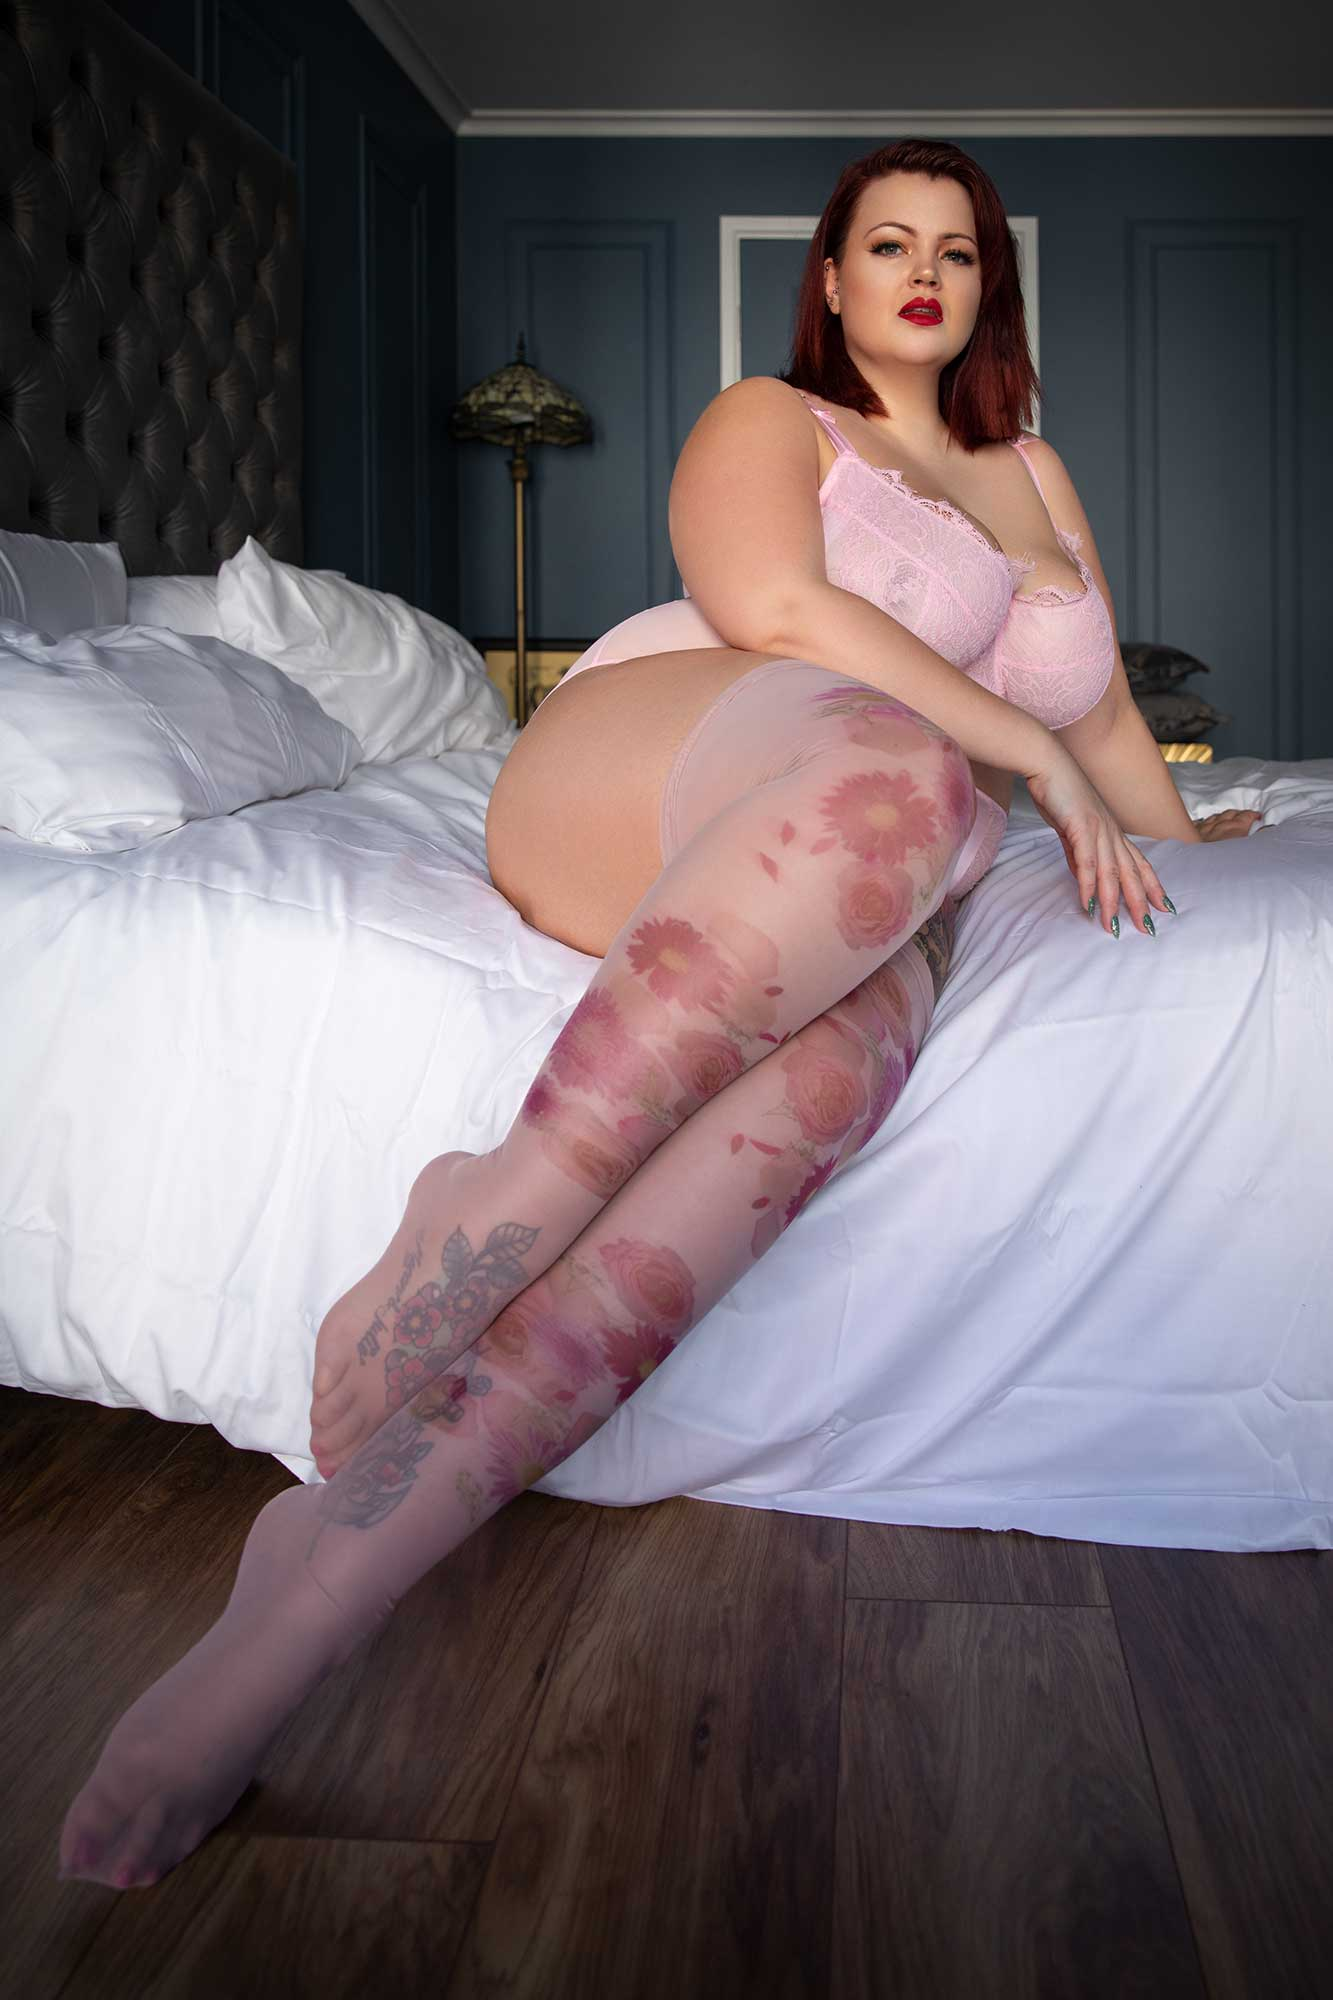 Nylon Stockings - Fuller Figure Fuller Bust - Uye Surana